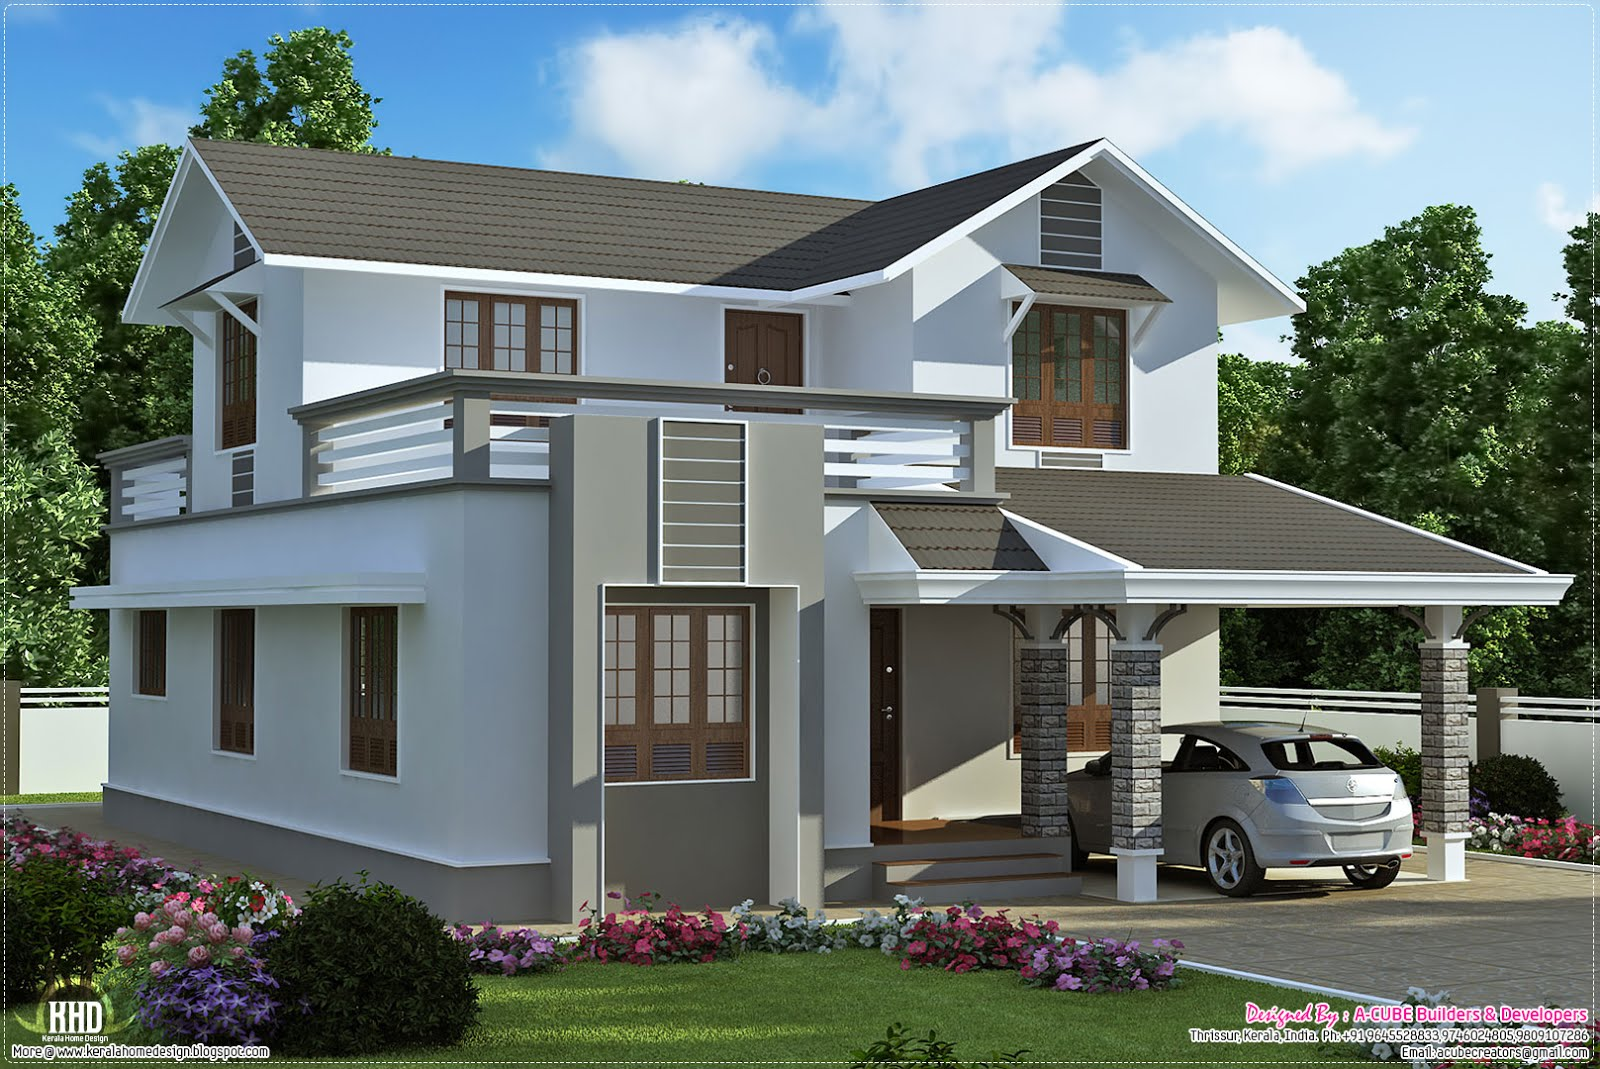 1900 sq.feet 2 storey villa plan